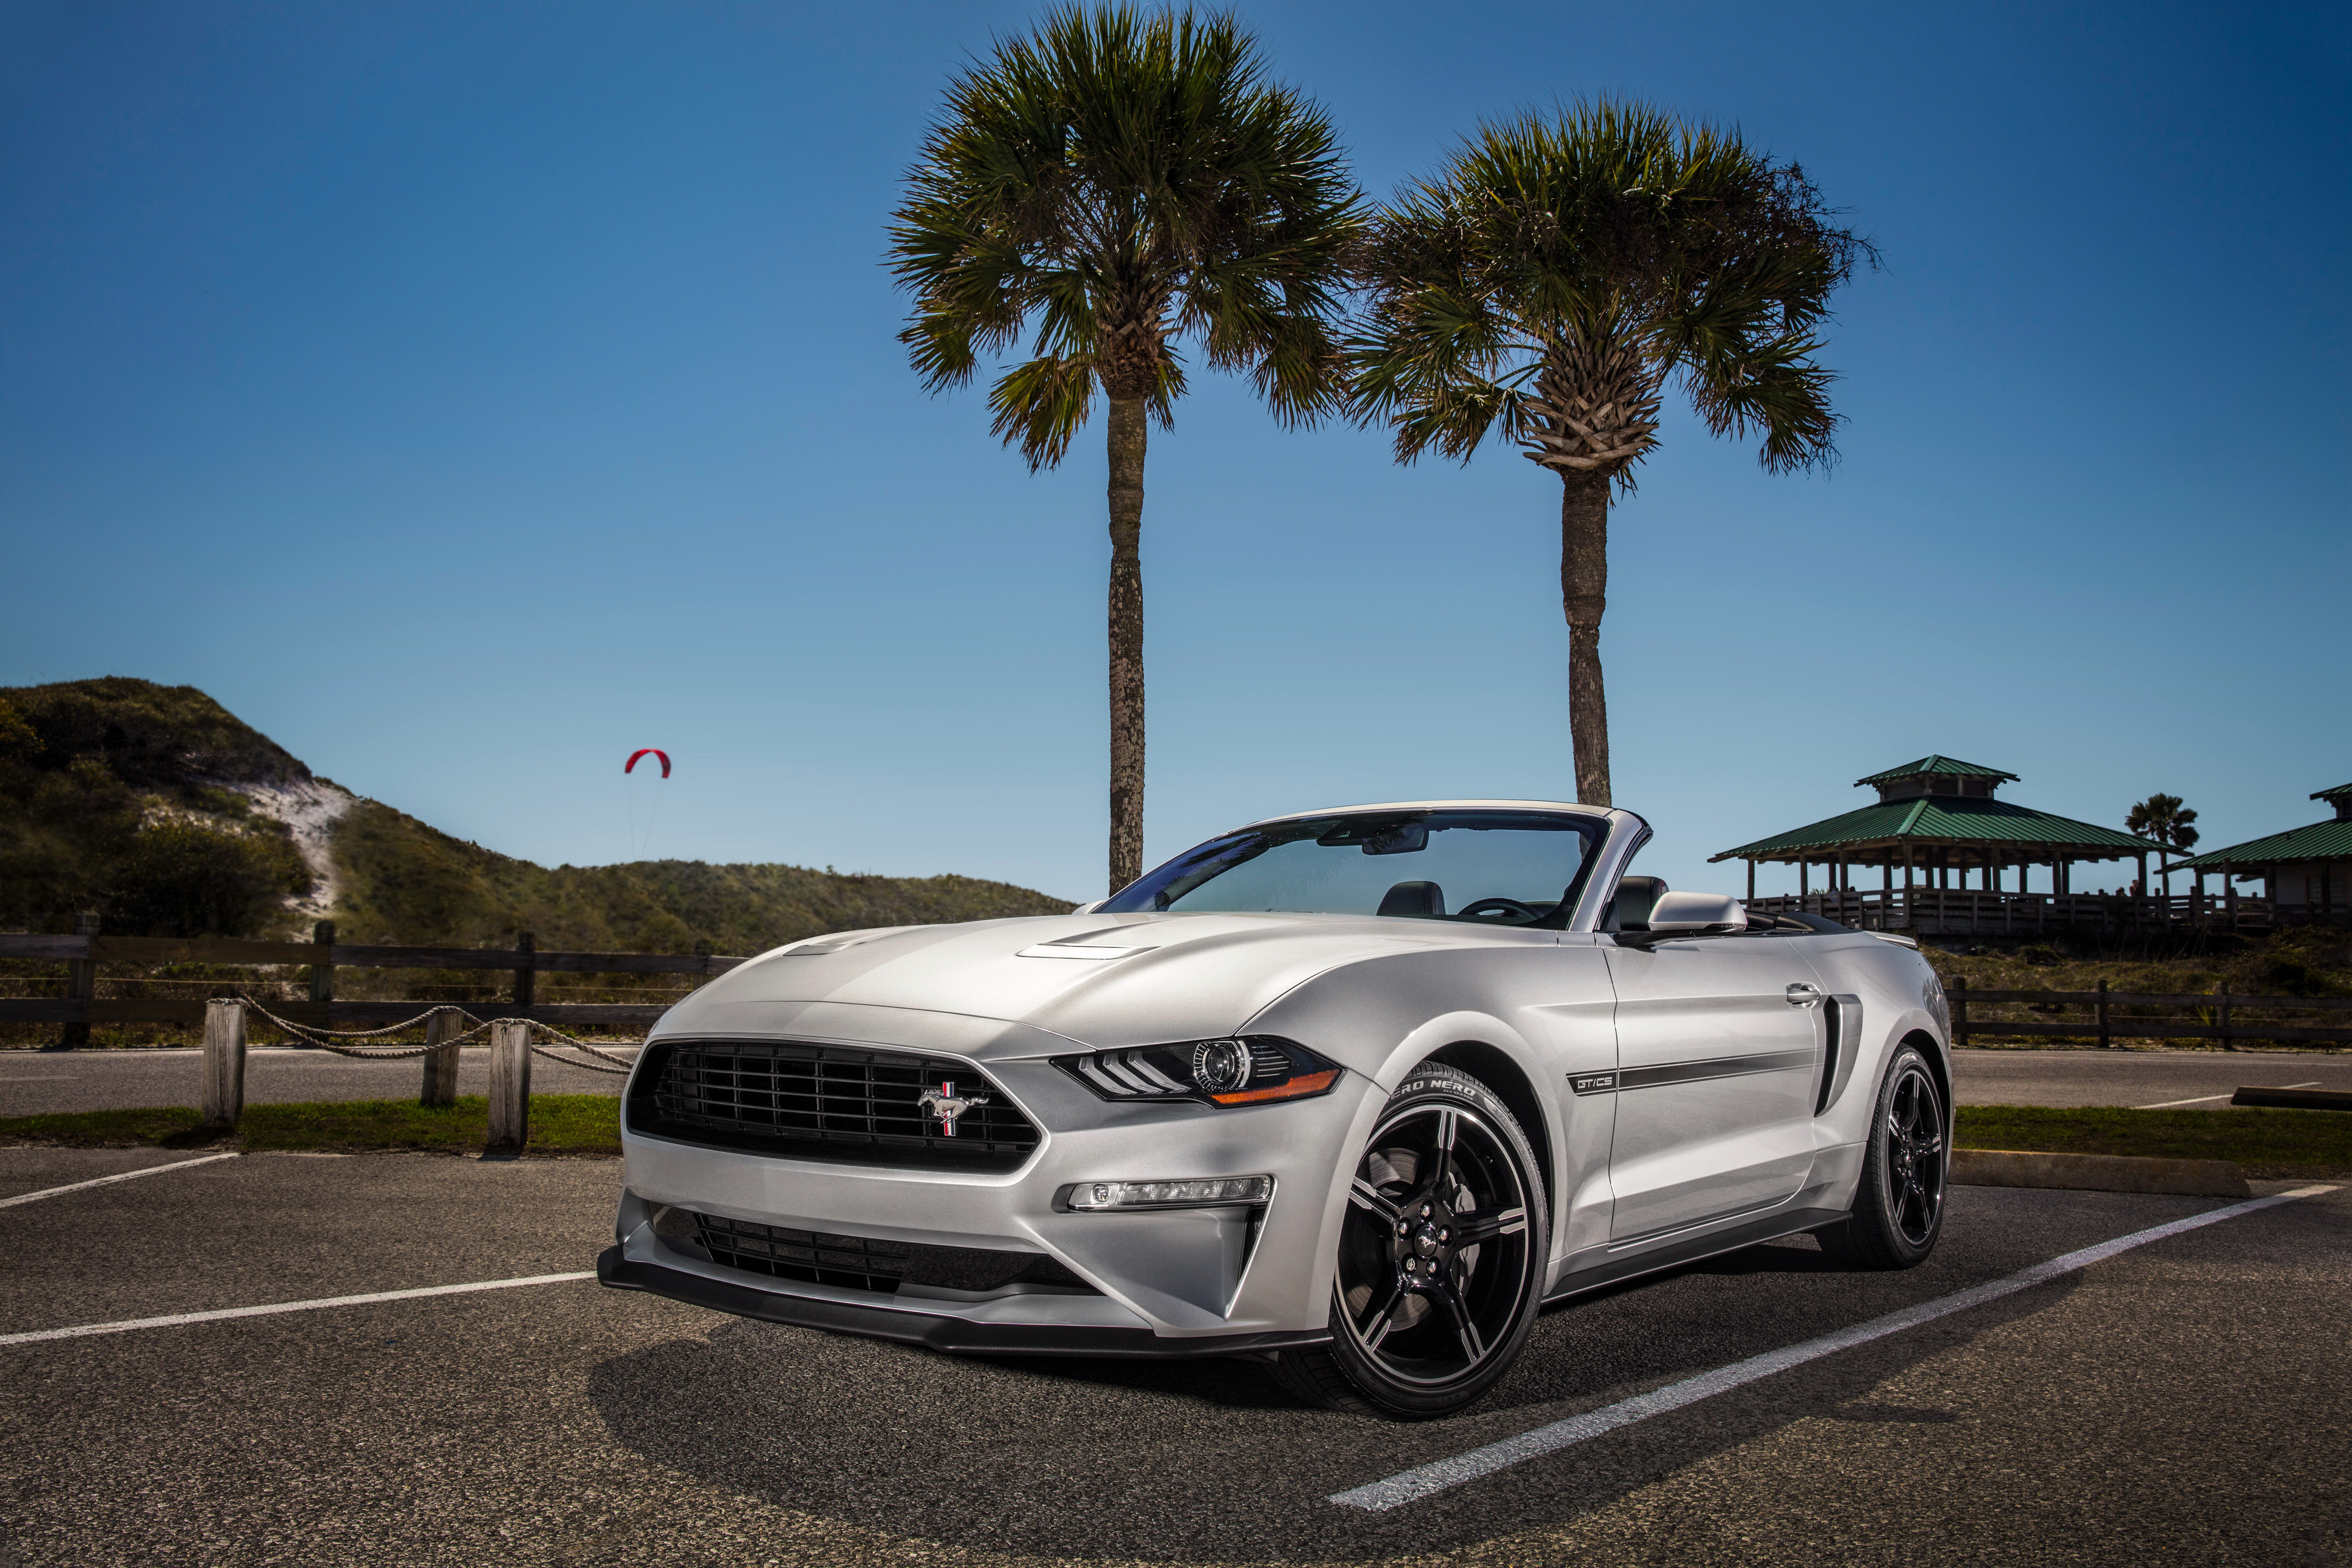 2019 Ford Mustang Gt Convertible Hd Cars 4k Wallpapers Images Backgrounds Photos And Pictures